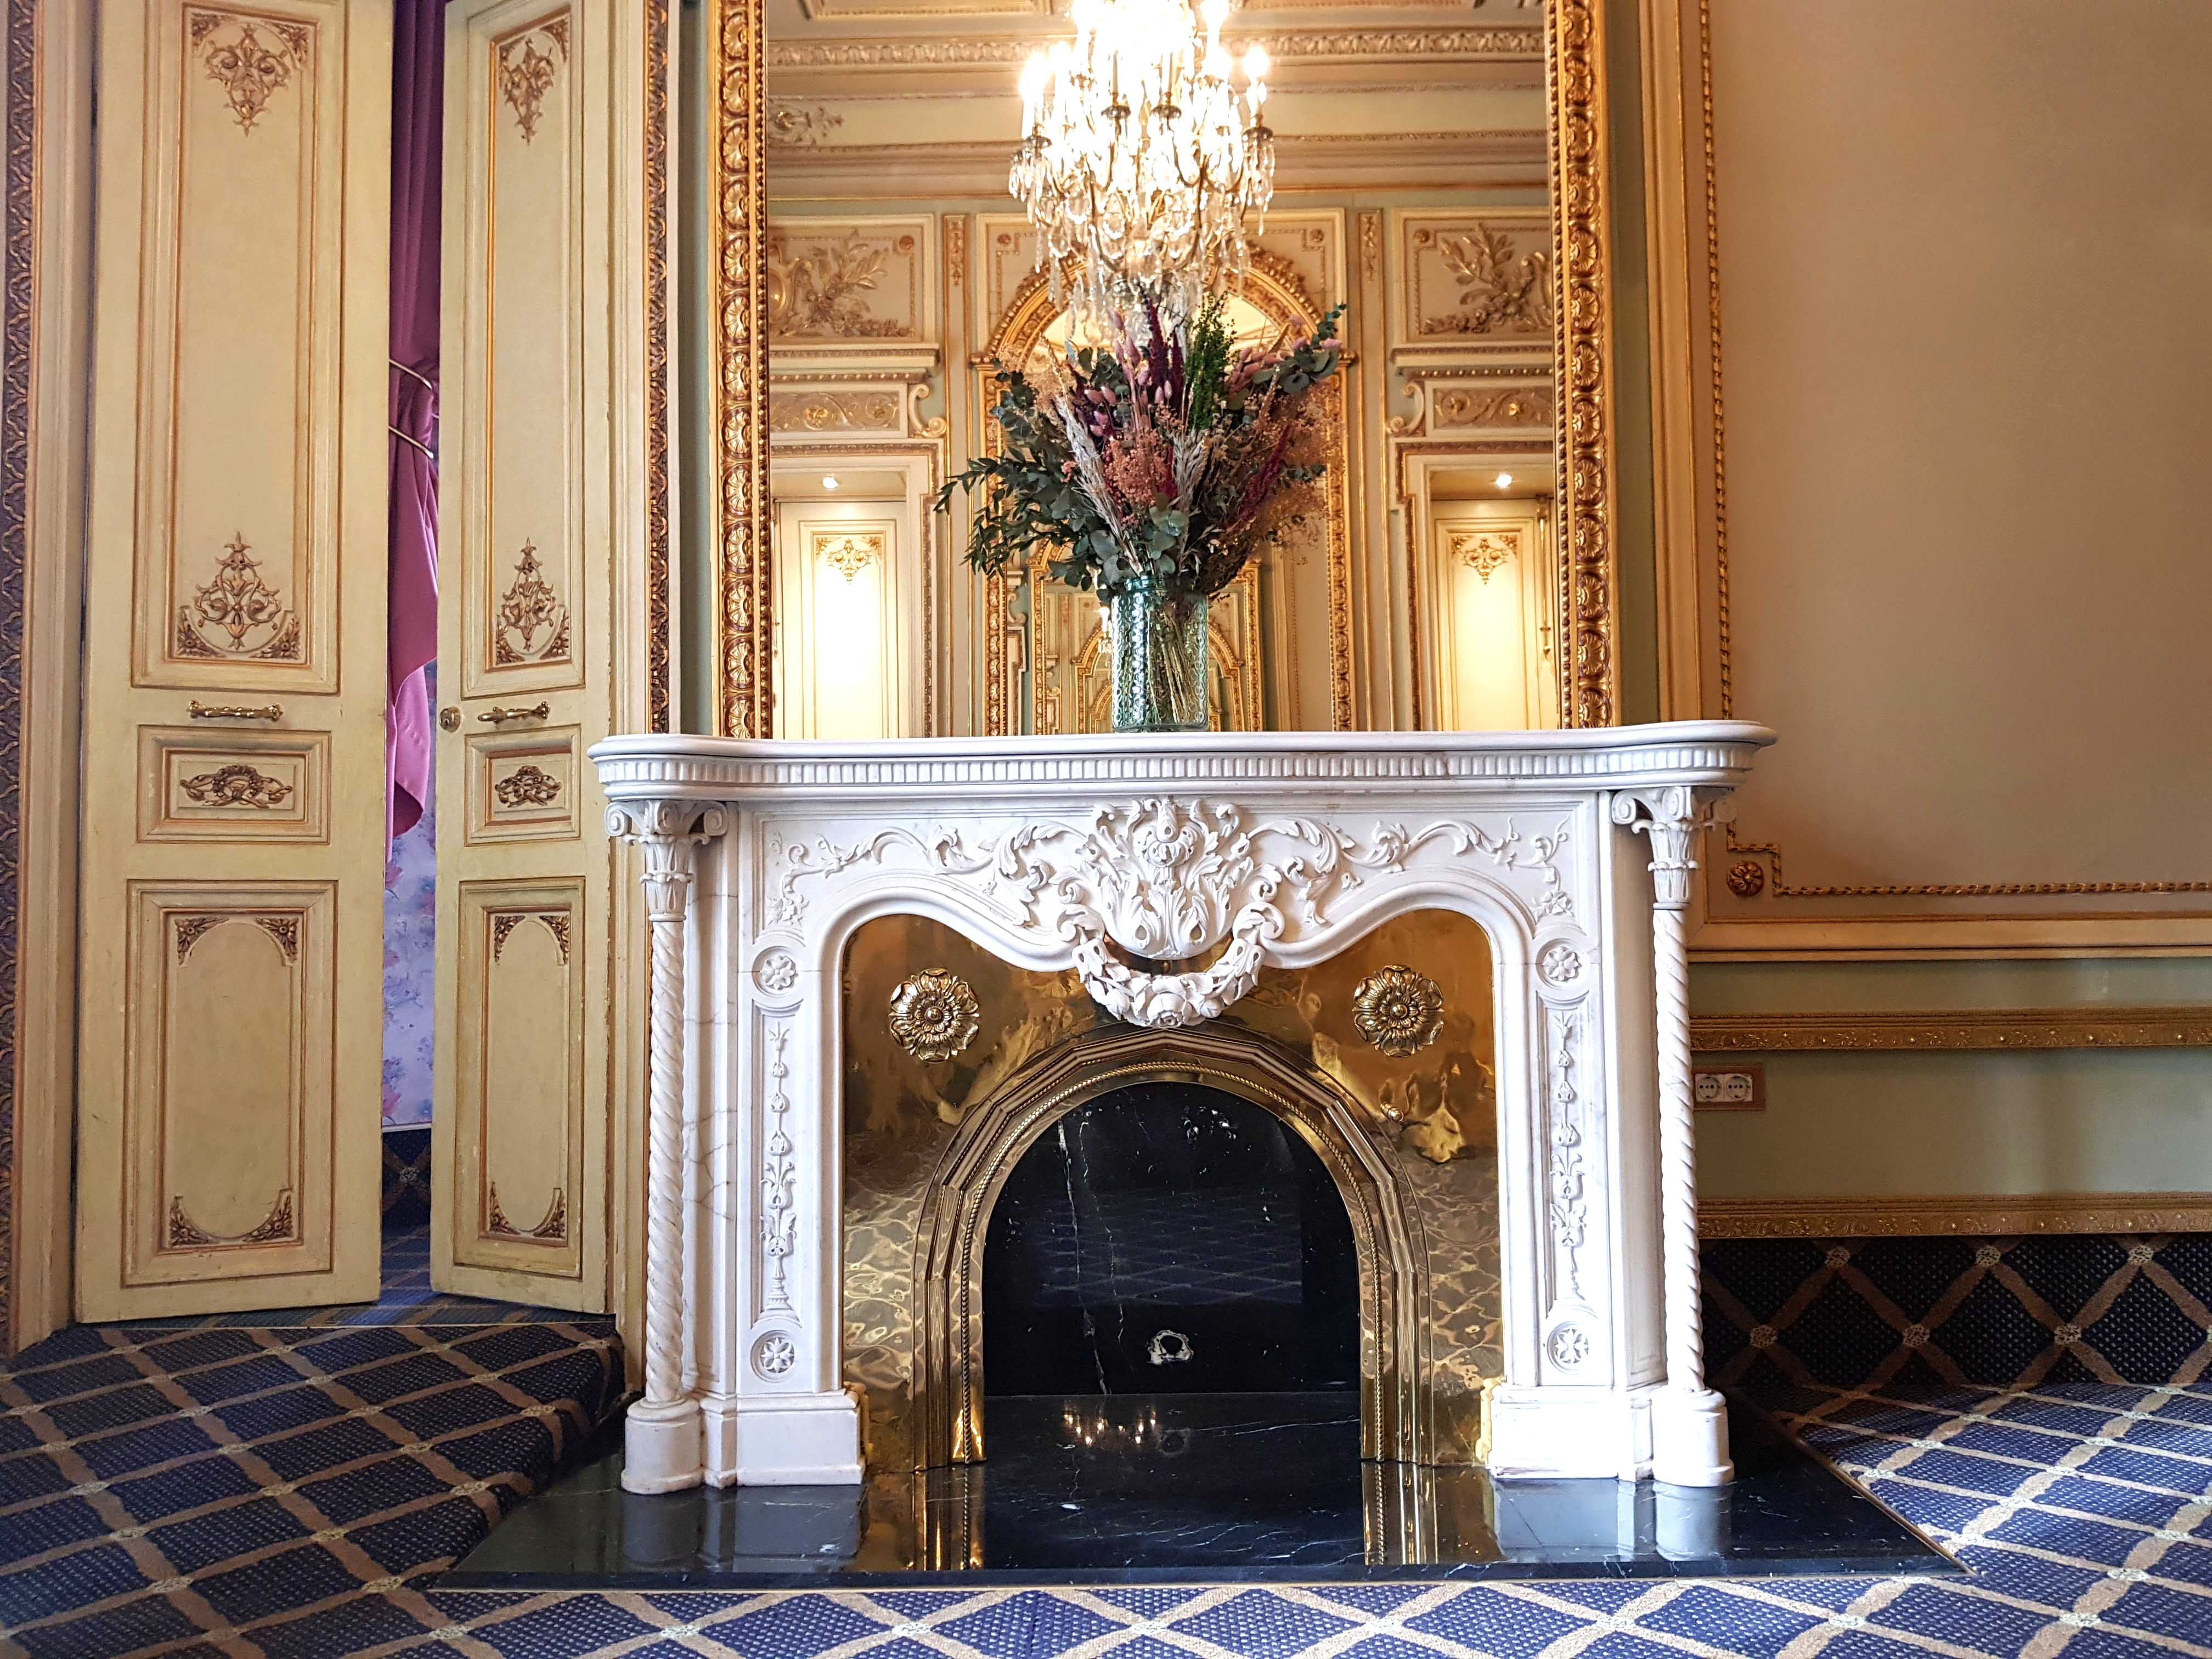 Suite Versailles Fireplace